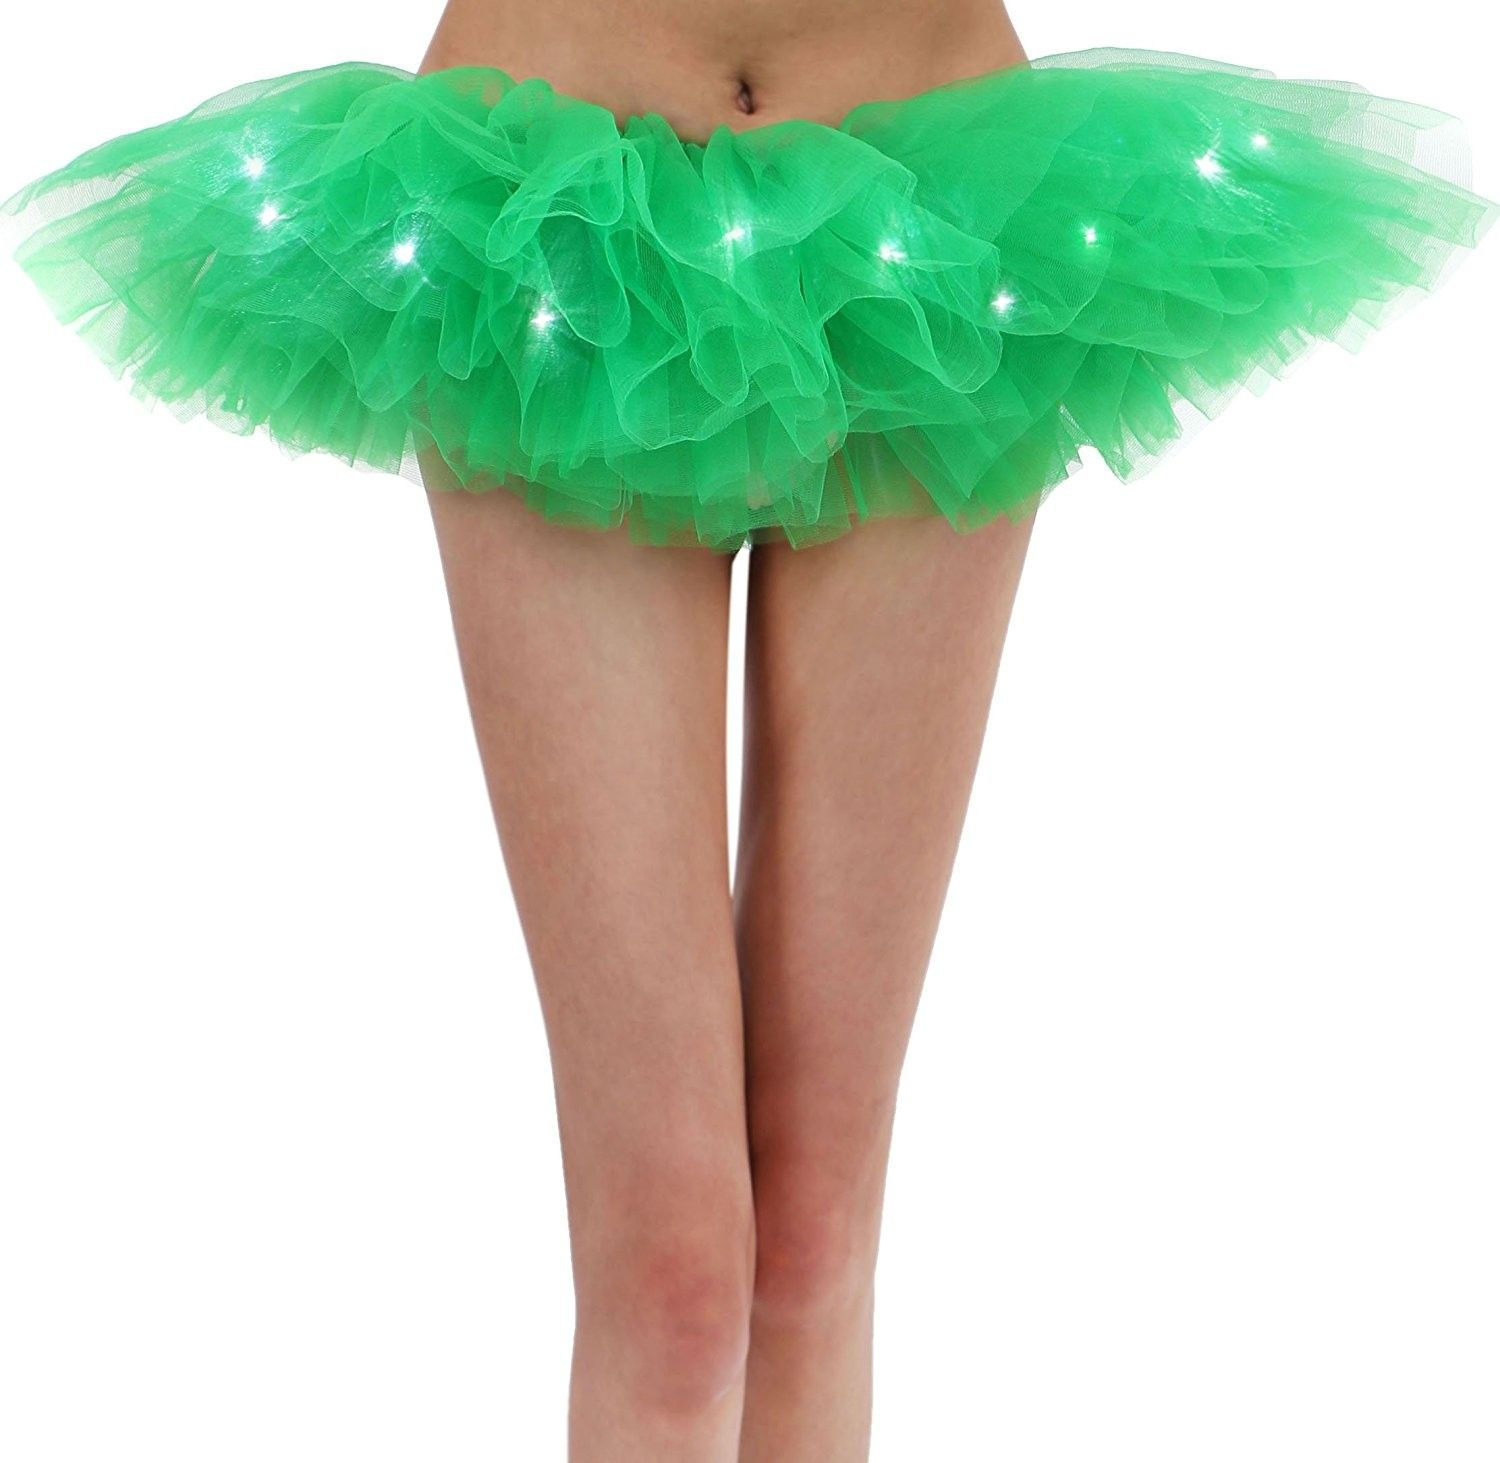 f37da0a880 Women's Classic 5 Layered LED Light Up Tutu Skirt - Green -  CR17YTYGCQ2,Women's Clothing, Skirts #women #clothing #fashion #style #sexy  #outfits #Skirts